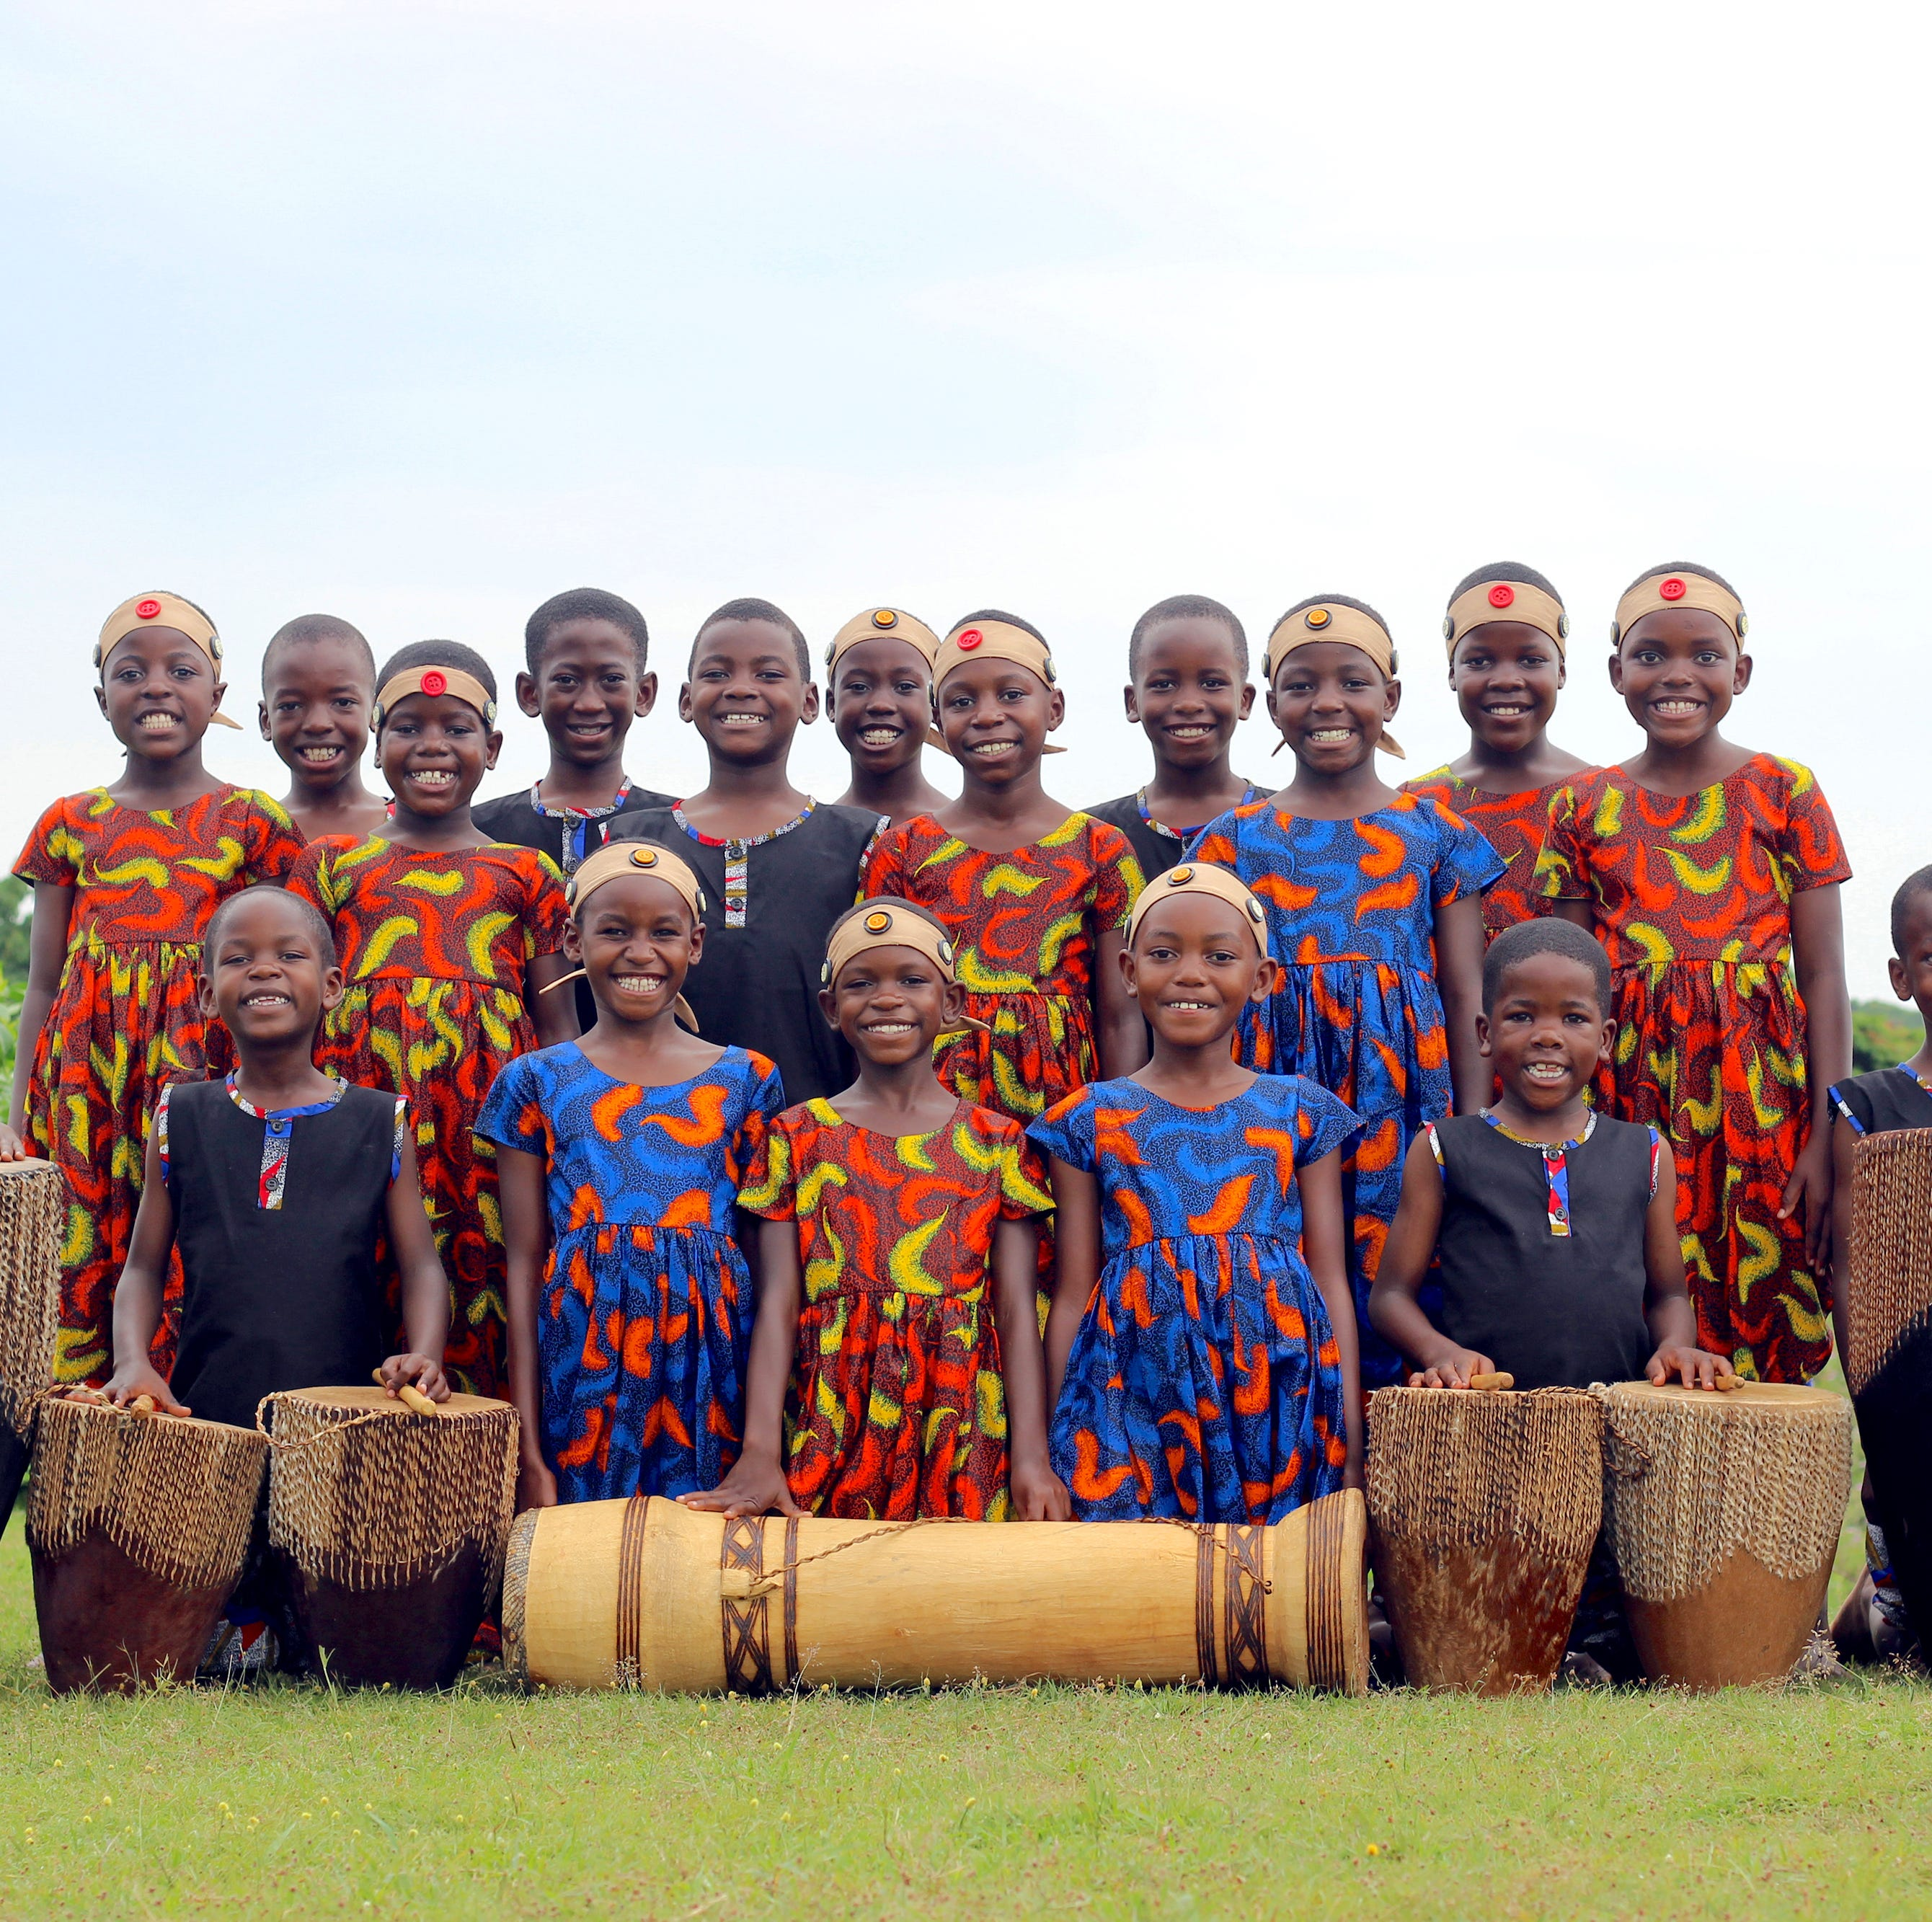 African Children's Choir coming to Southern Utah for charity concert